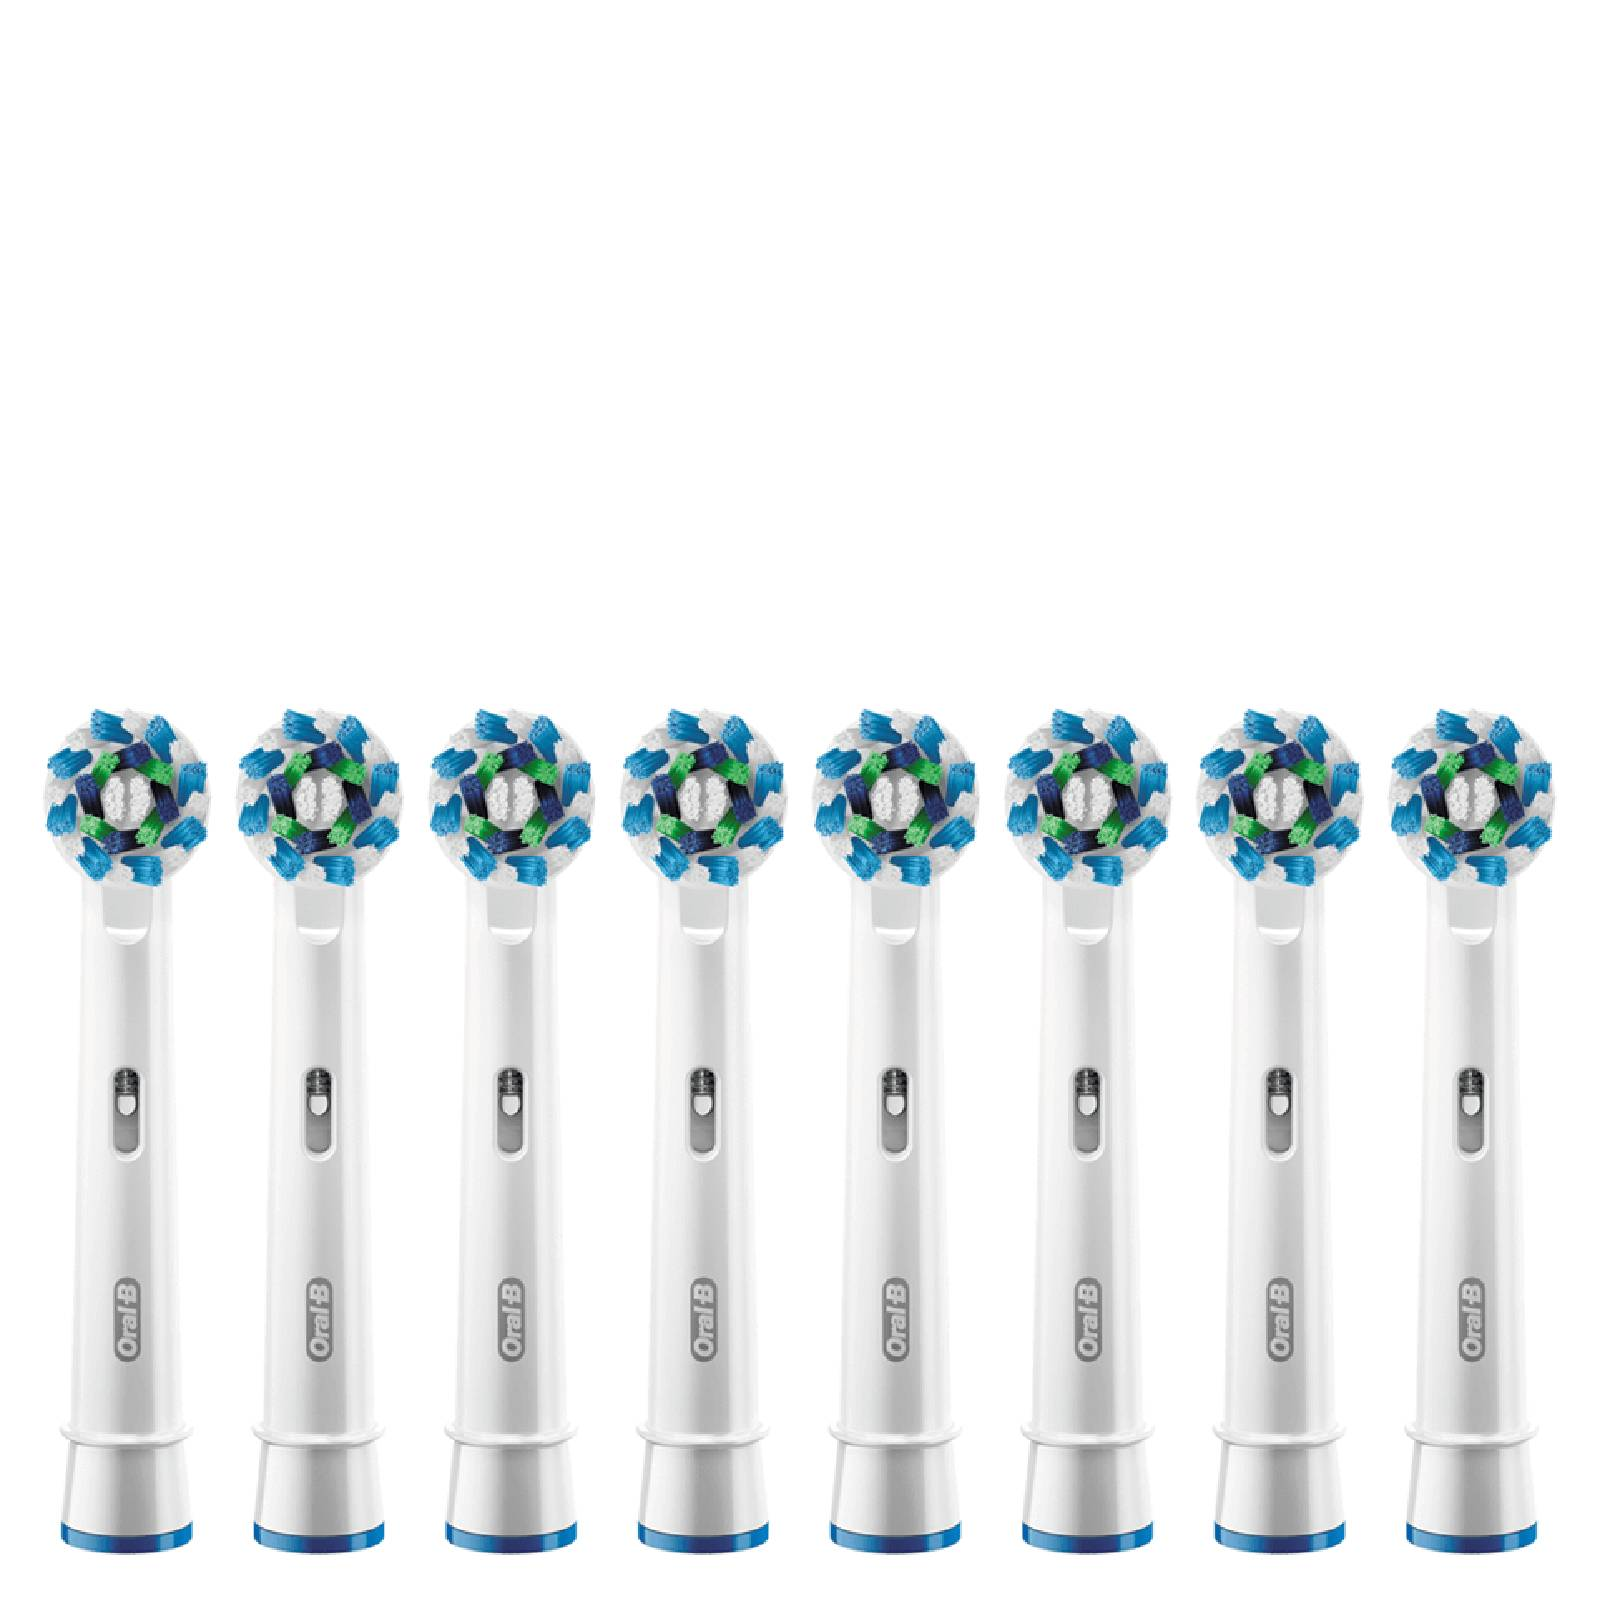 Oral B Oral-B Cross Action Replacement Toothbrush Heads (8 Pack)